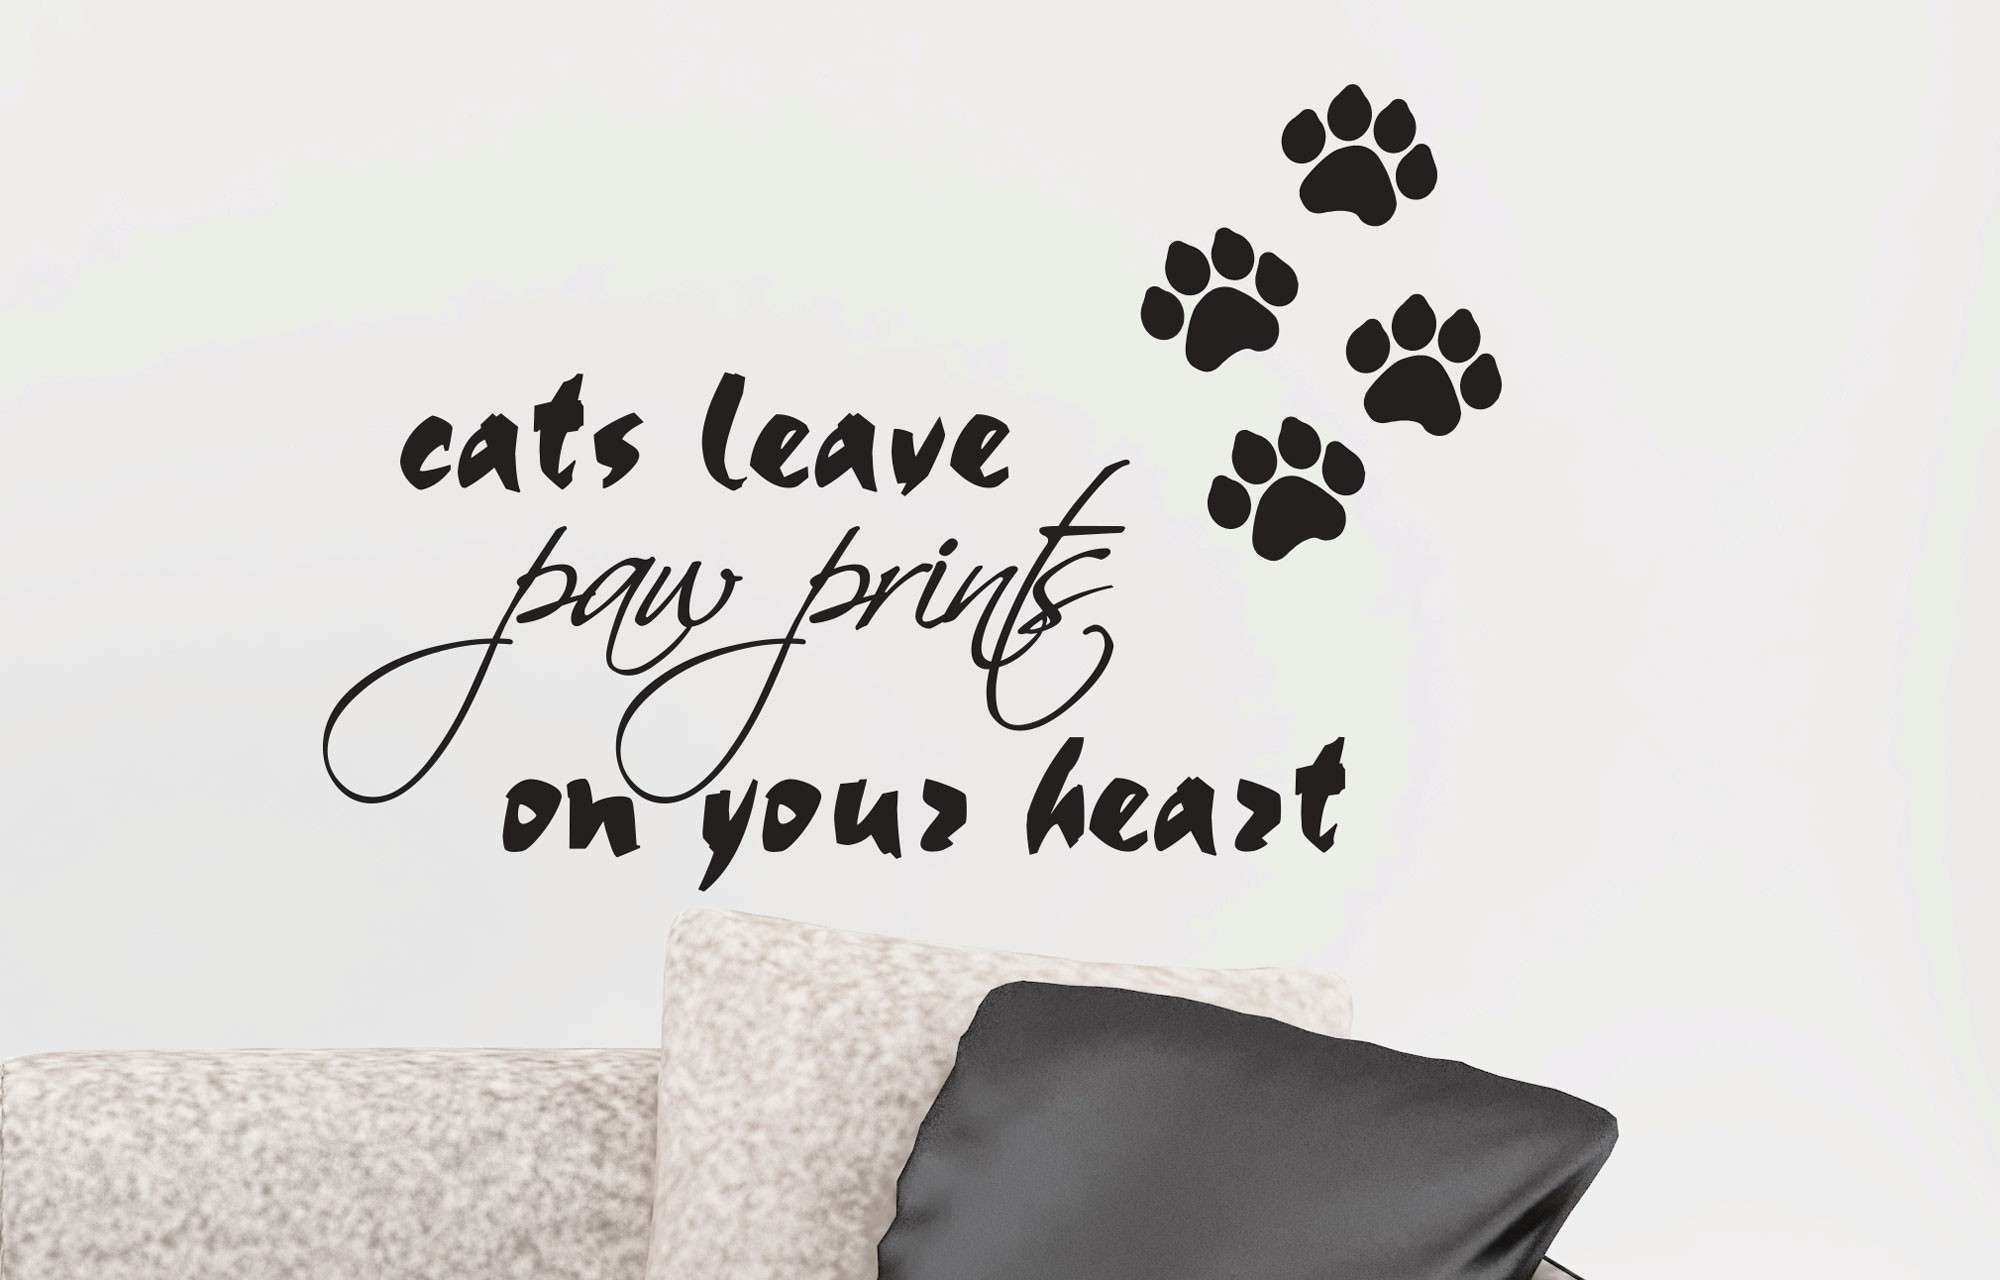 CATS LEAVE PAW PRINTS ON YOUR HEART REMOVABLE ART WALL DECAL VINYL